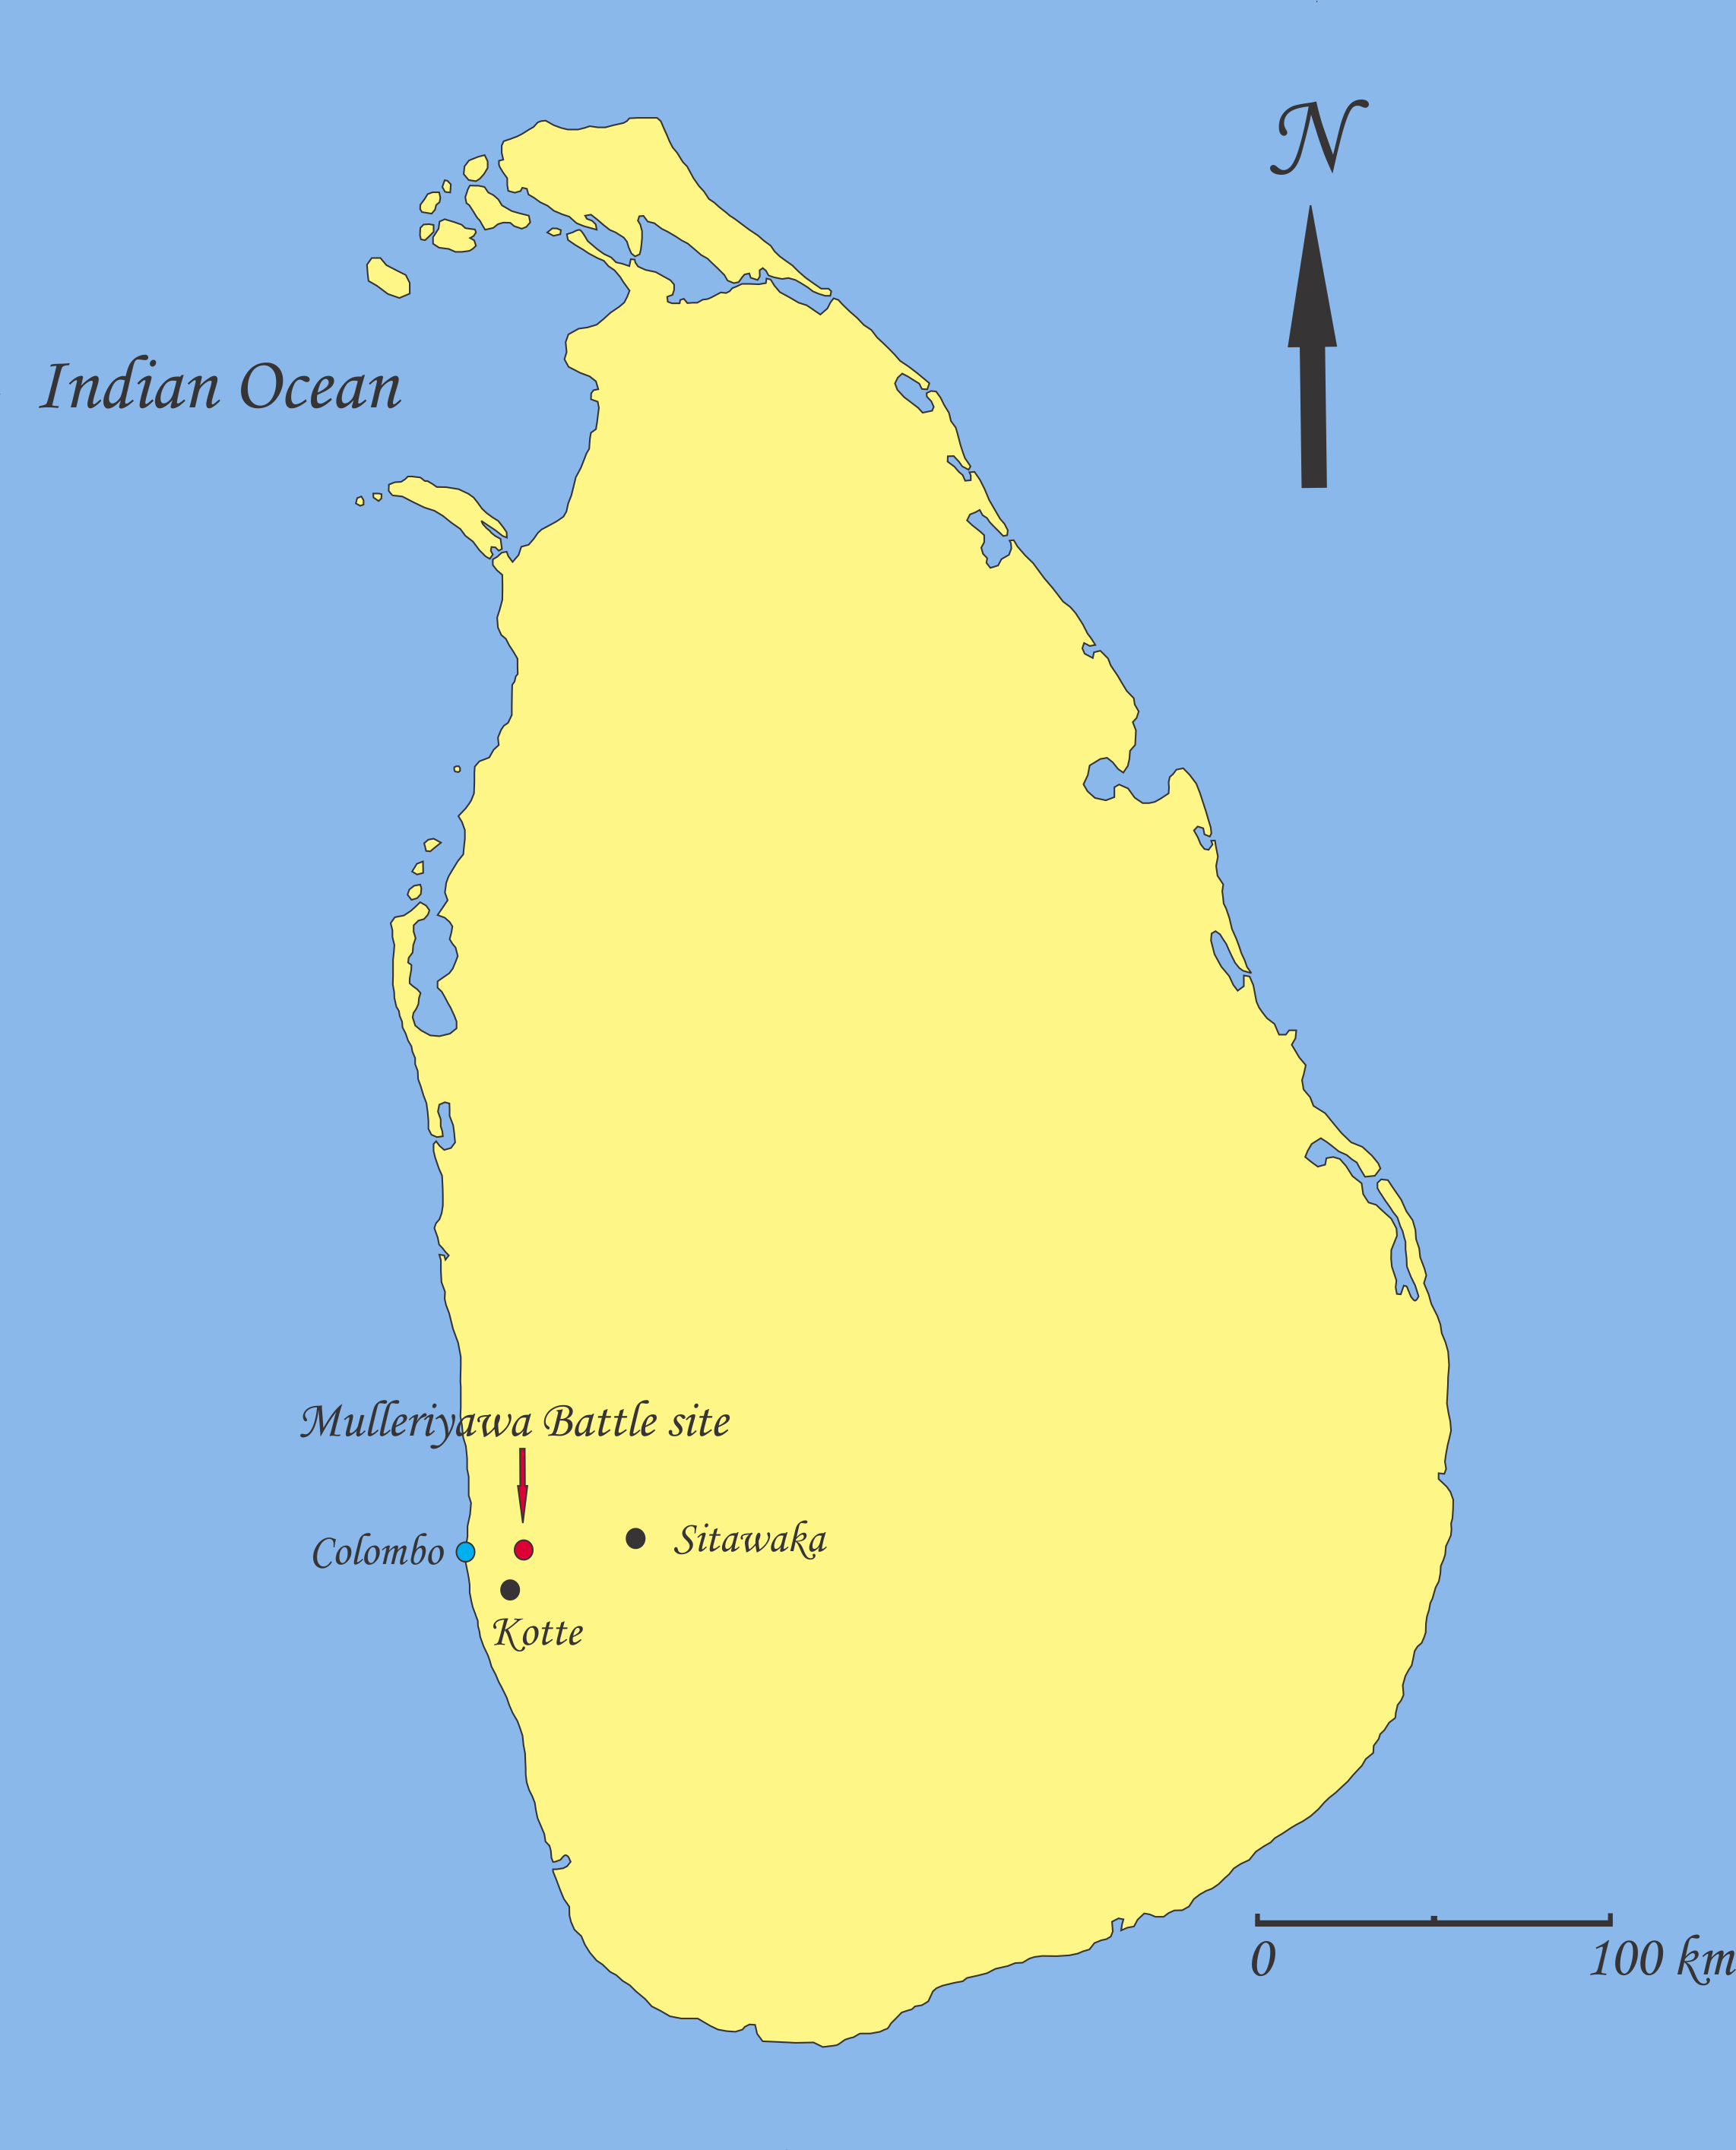 File:Mulleriyawa battle site on Sri Lanka map.png.